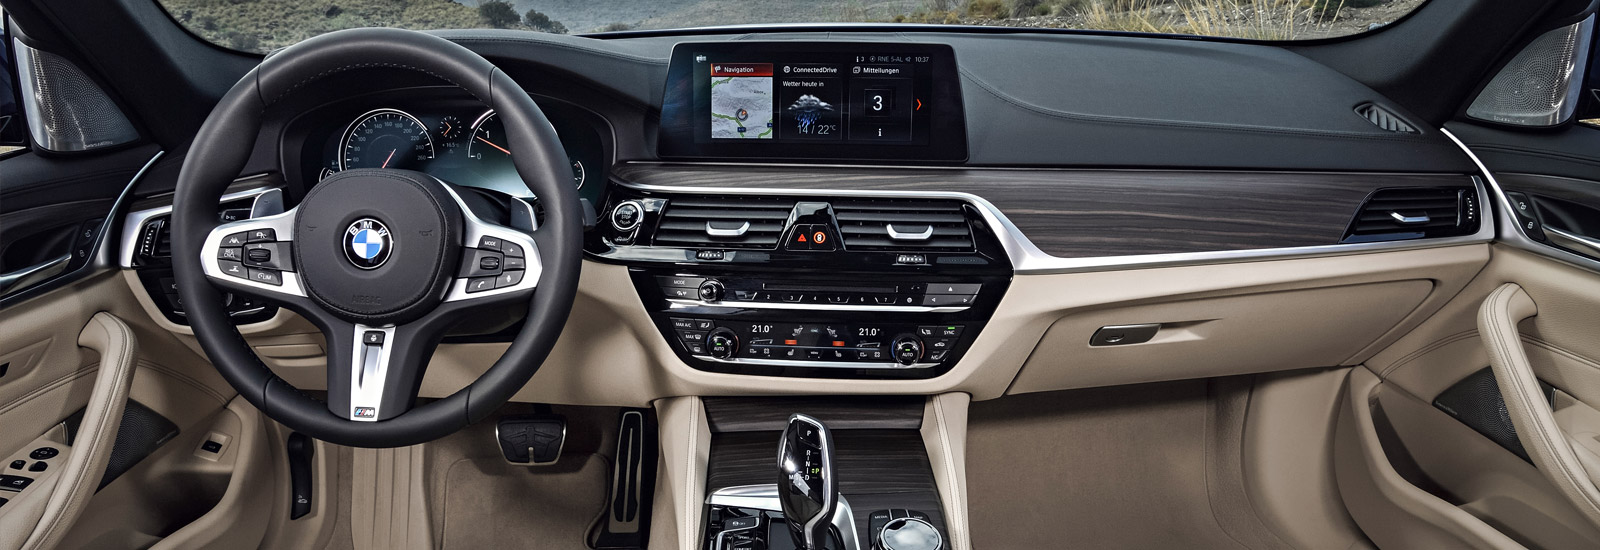 bmw 1 er 2018. contemporary bmw the new 1 series could borrow interior styling cues from the 5 series  pictured here for bmw er 2018